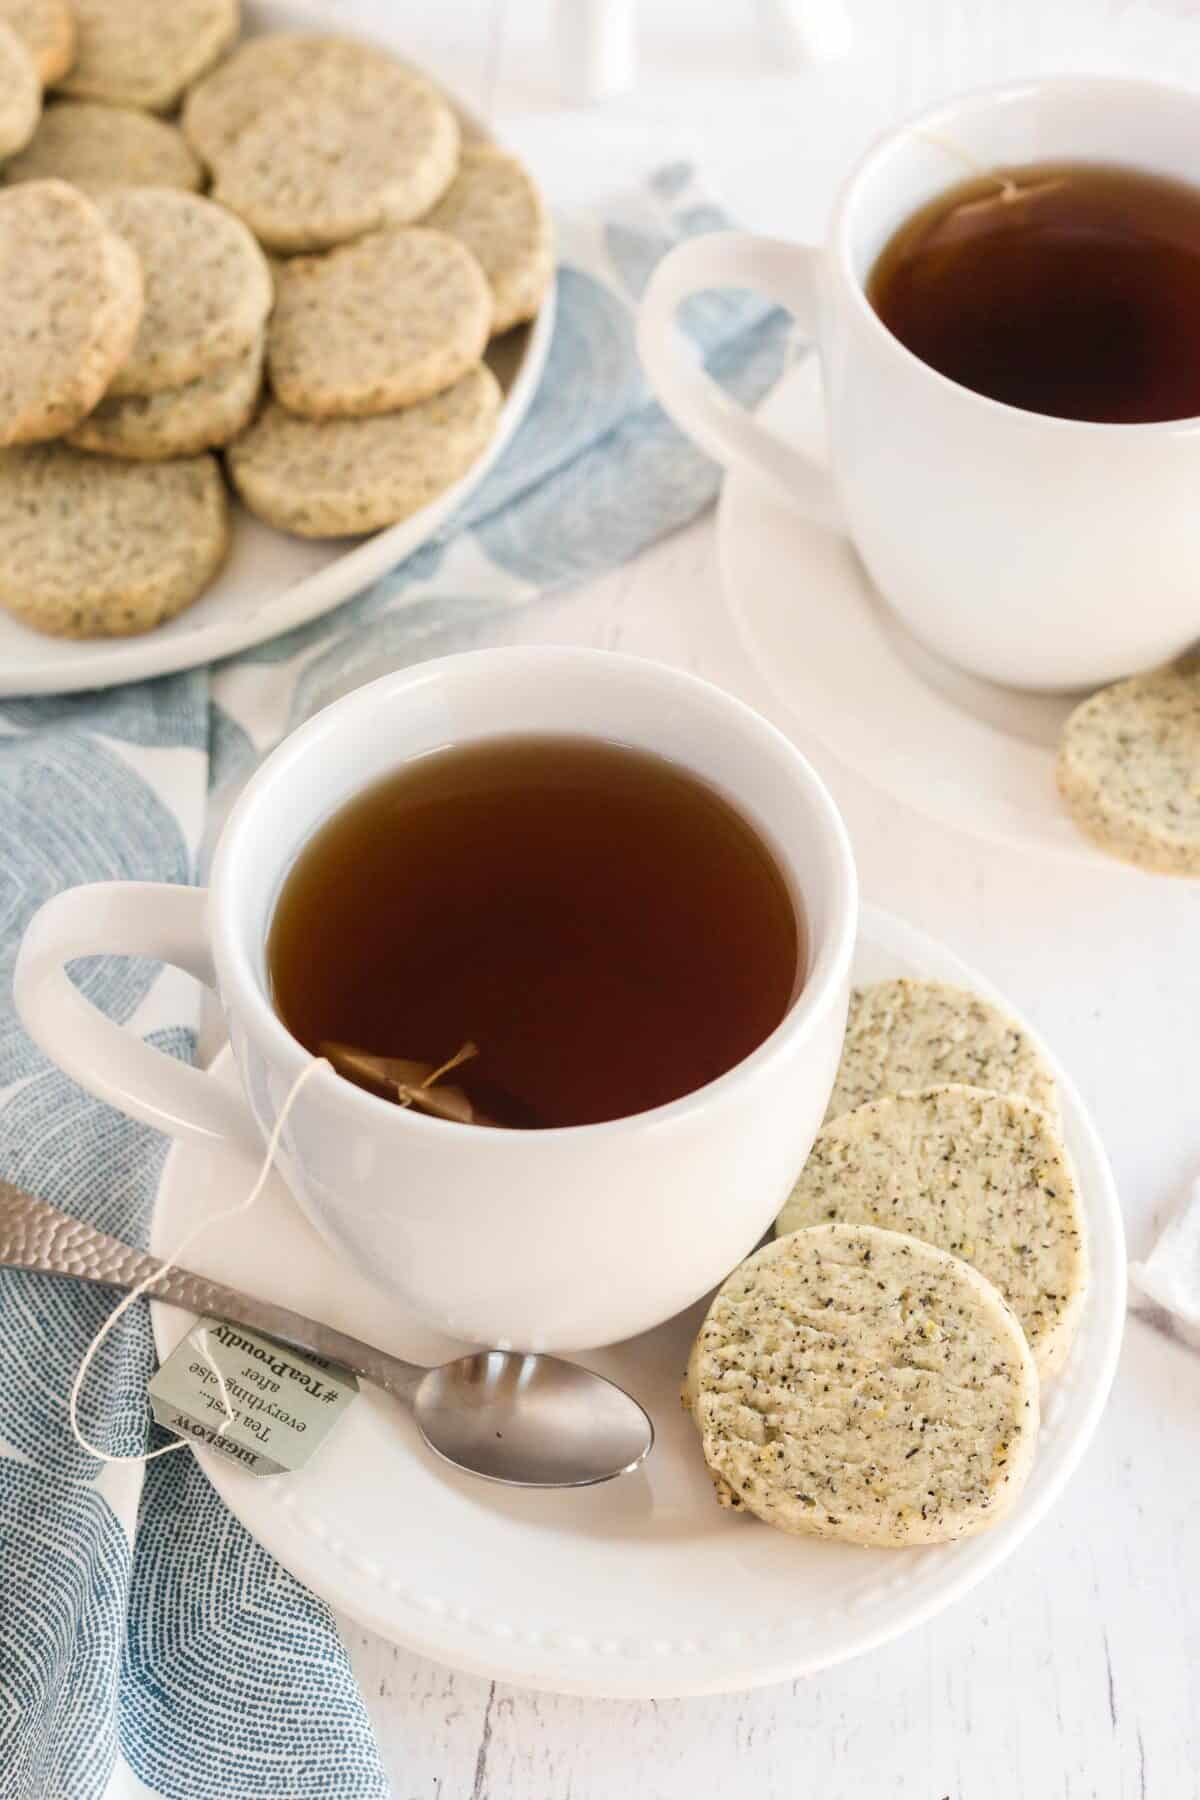 cookies with a teacup and saucer